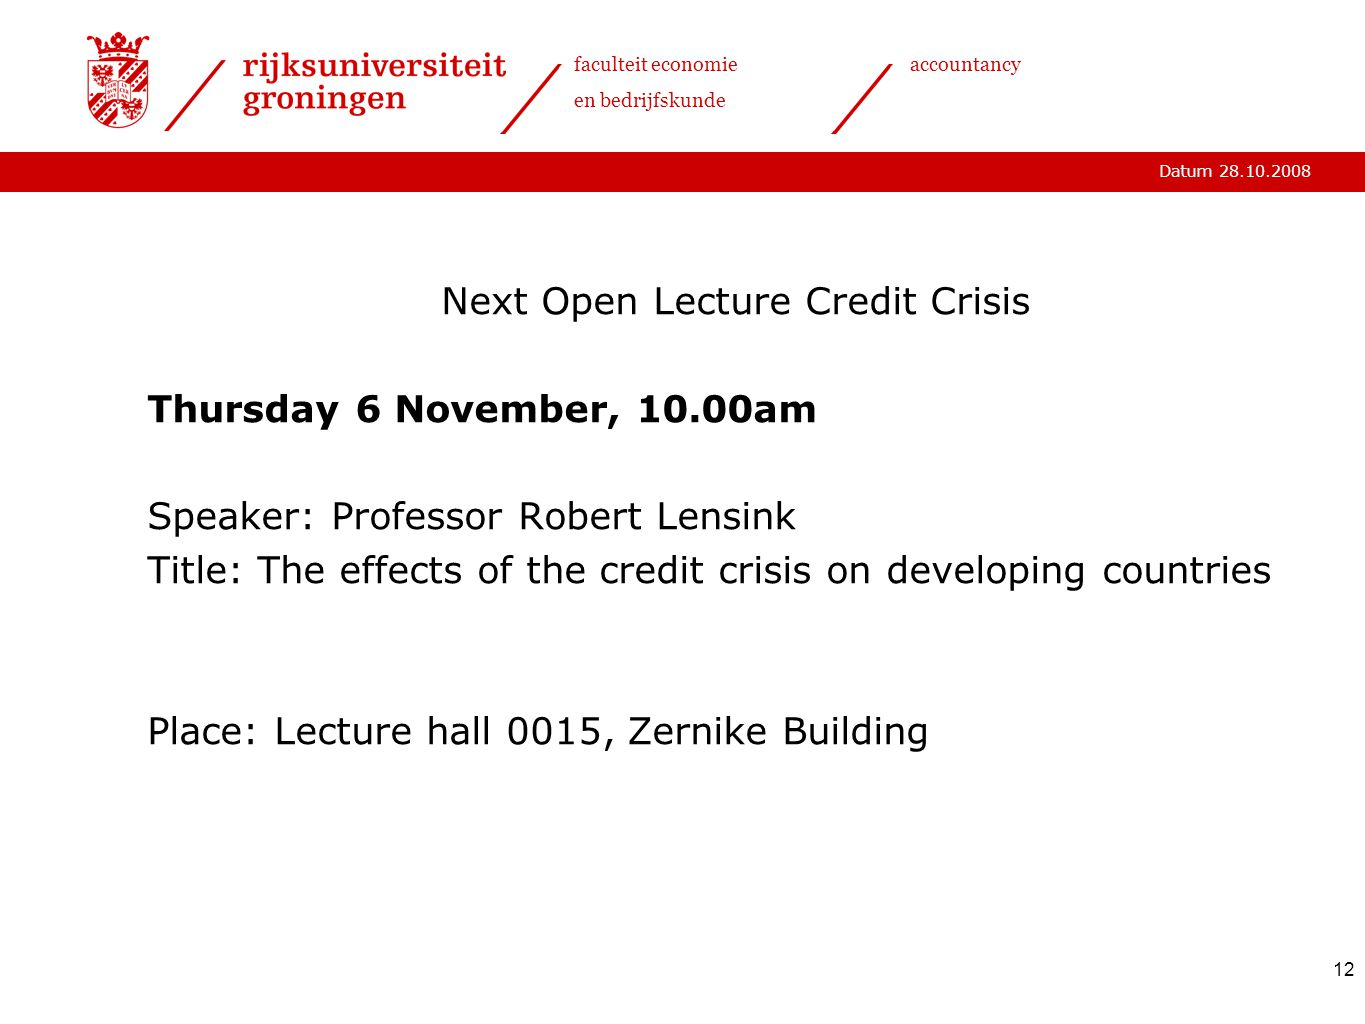 Datum 28.10.2008 faculteit economie en bedrijfskunde accountancy 12 Next Open Lecture Credit Crisis Thursday 6 November, 10.00am Speaker: Professor Robert Lensink Title: The effects of the credit crisis on developing countries Place: Lecture hall 0015, Zernike Building